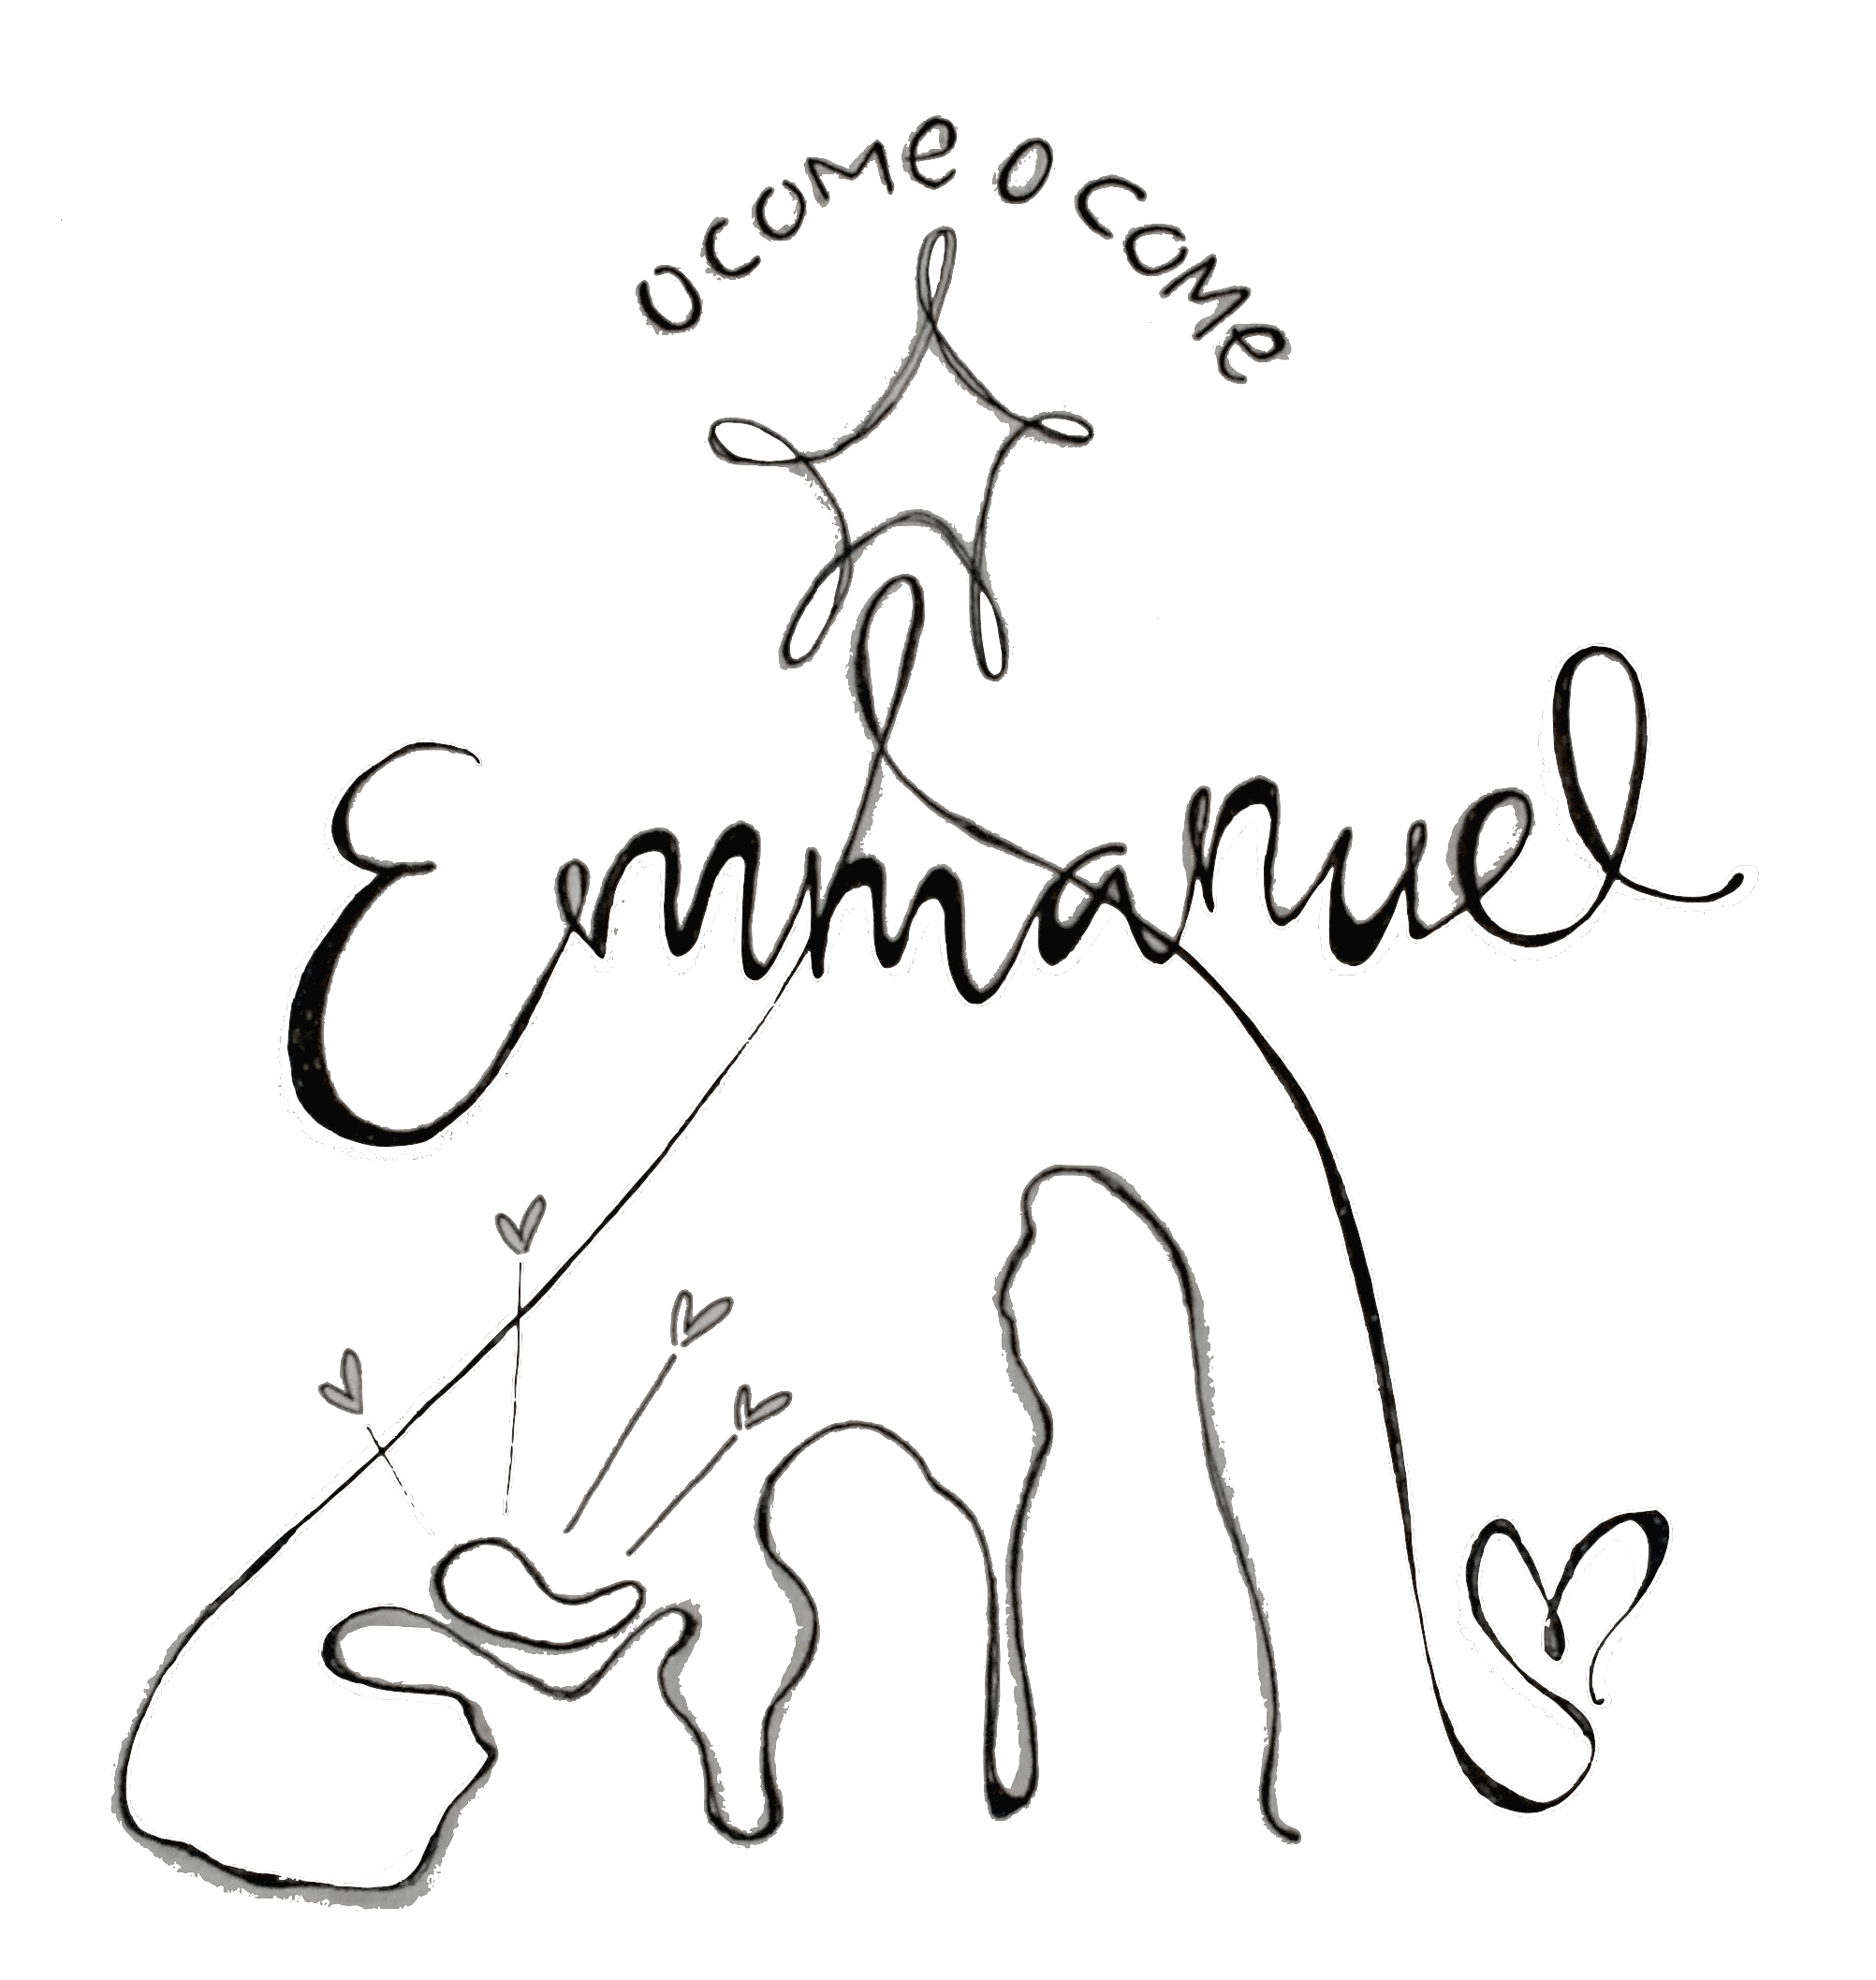 Ocomeemmanuel suecarroll scripture bible. Drawing creativity doodle clip art royalty free